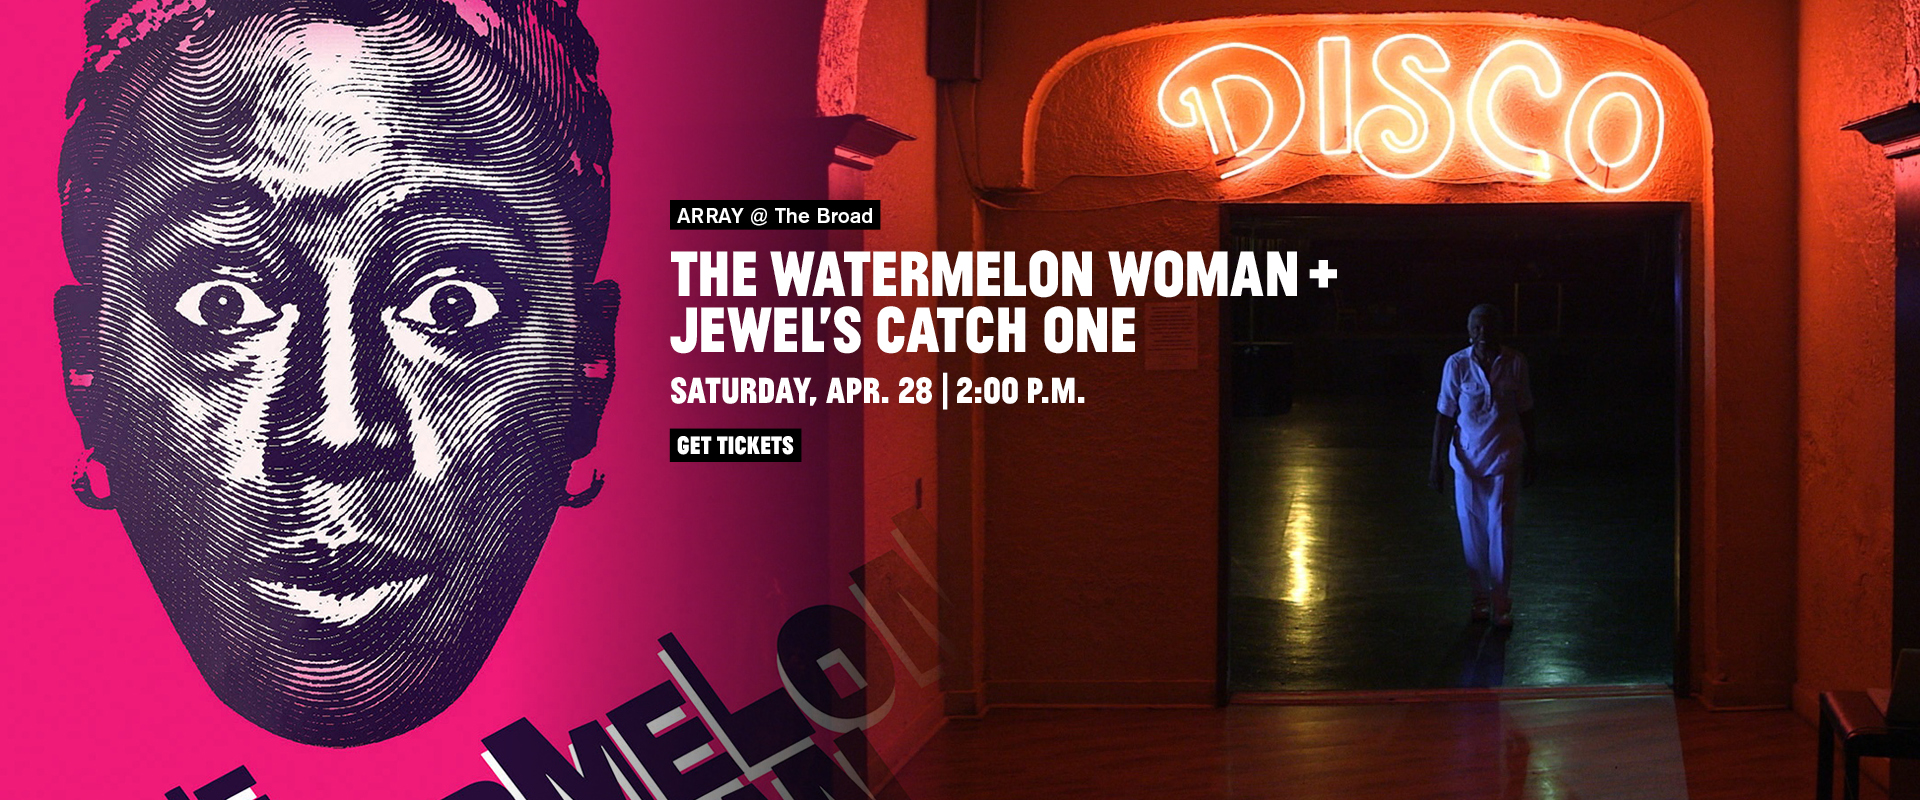 ARRAY @ The Broad: The Watermelon Woman + Jewel's Catch One